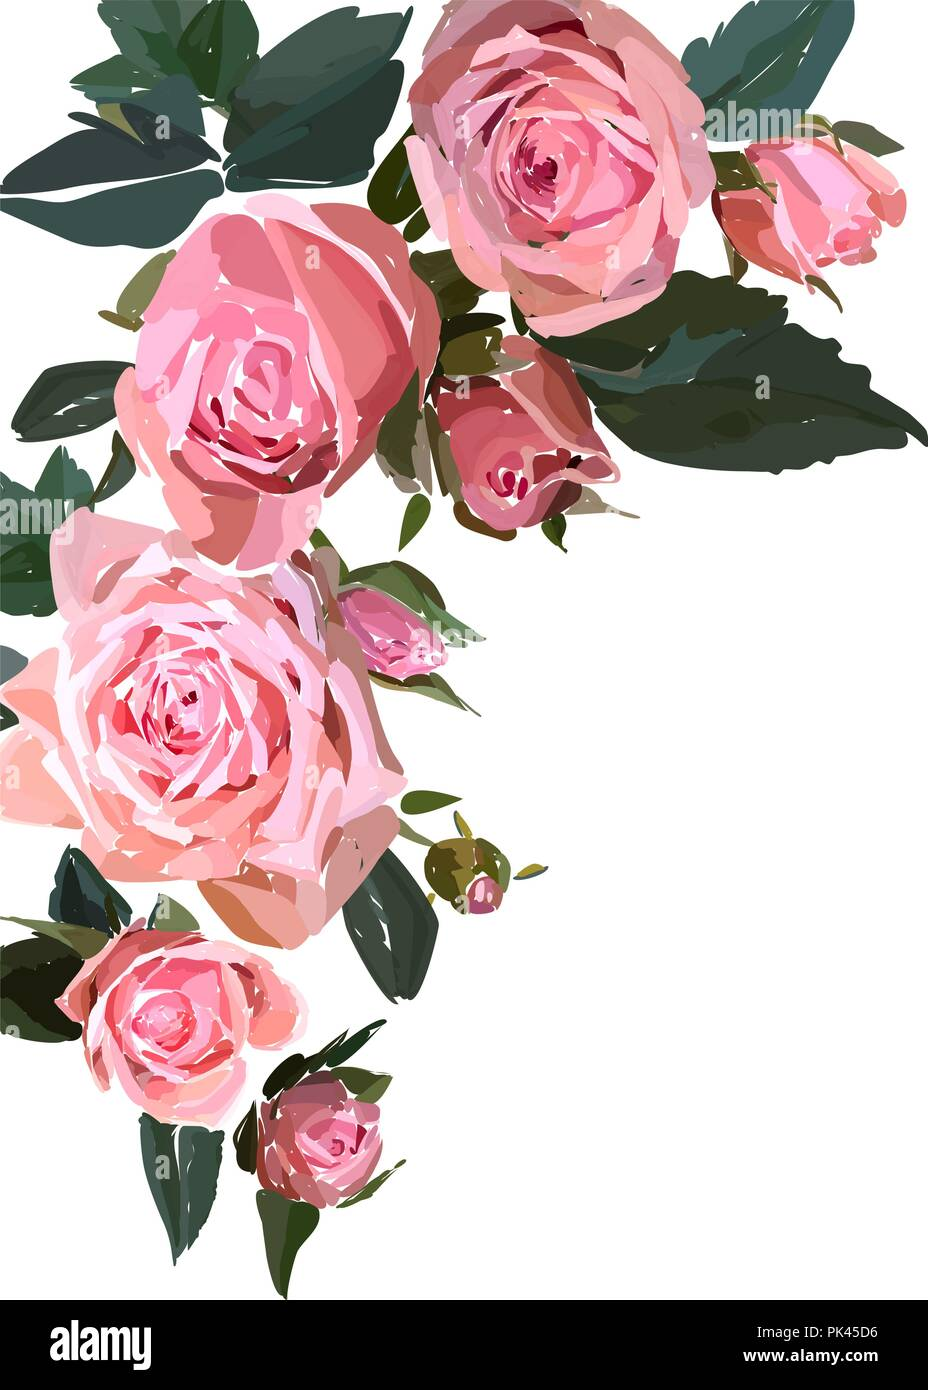 Floral Design Illustration Garden Flower Pink Rose Isolated On